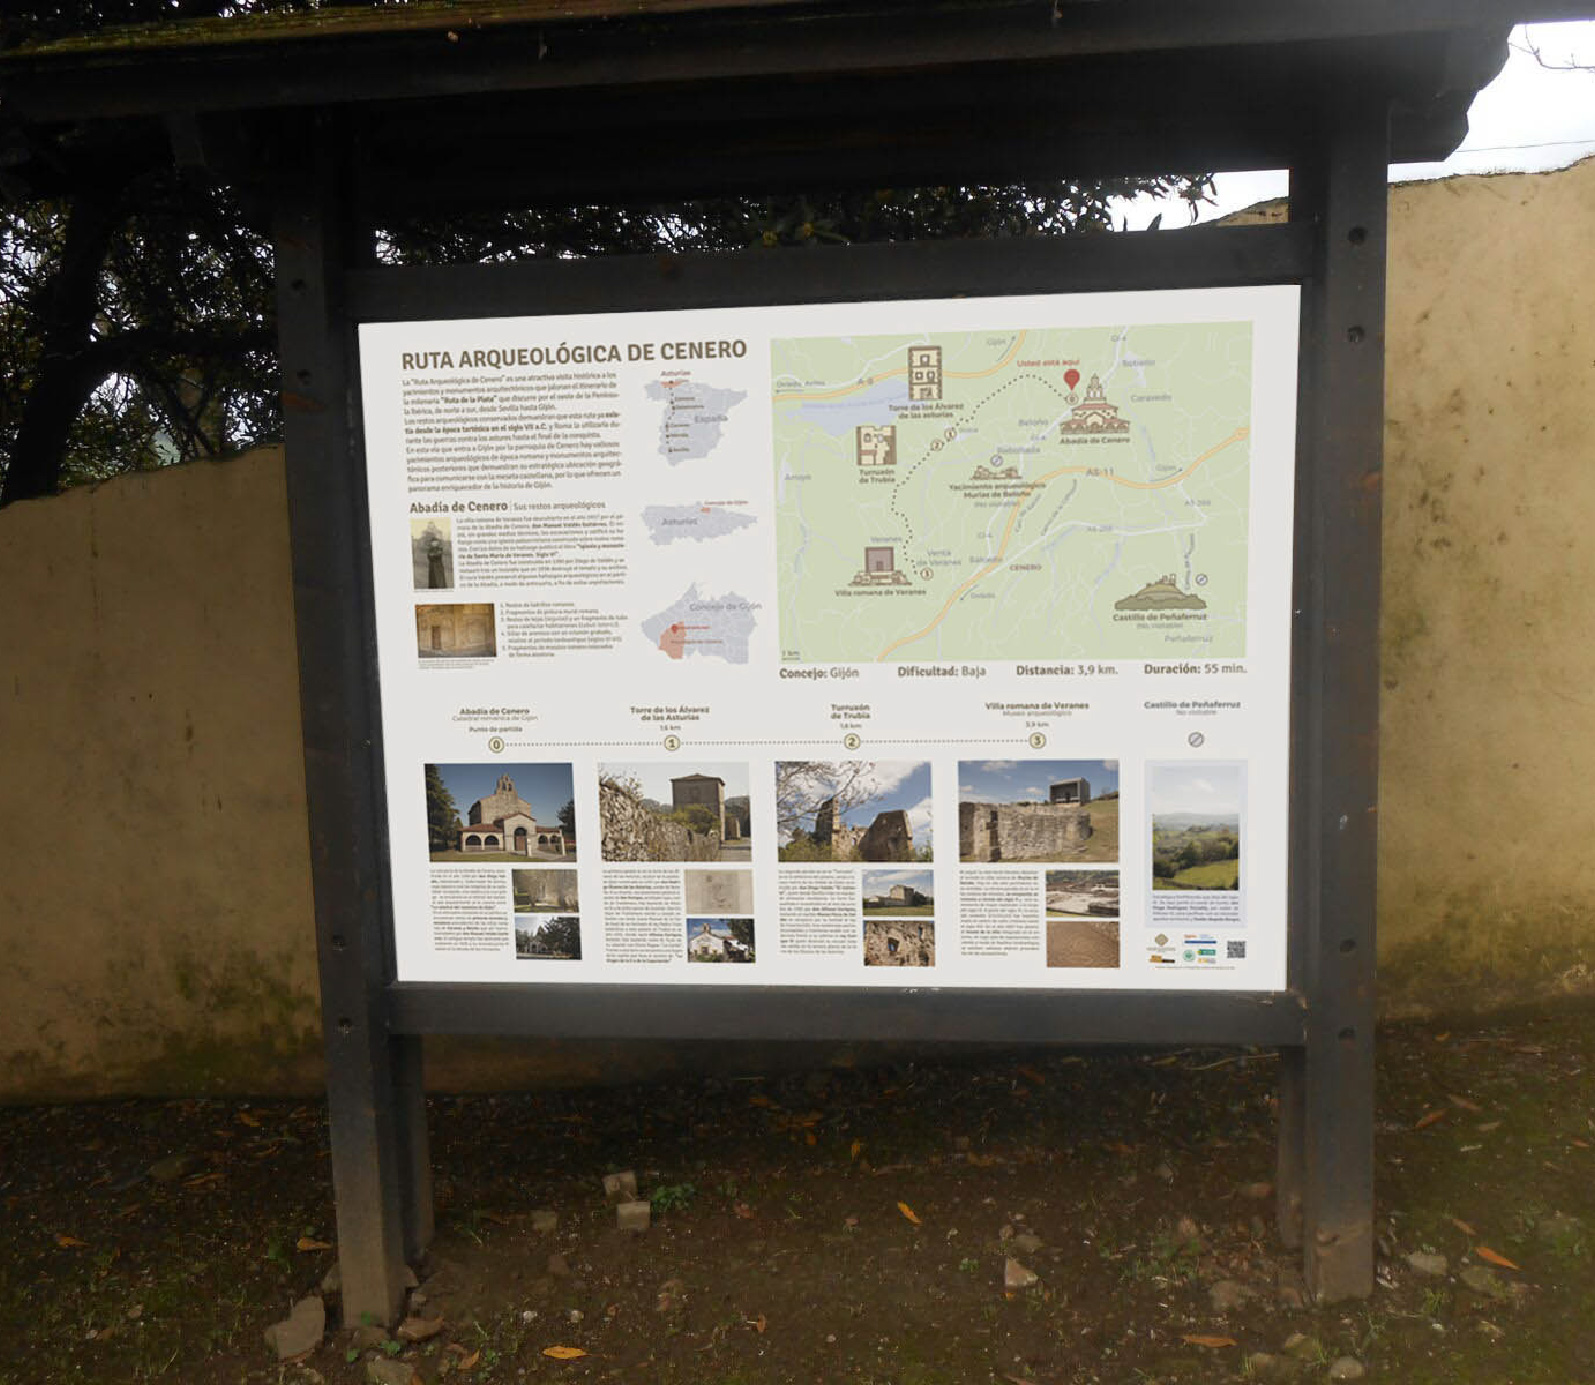 Route panel to show some information and the geolocation of the main monuments of the roman ruins